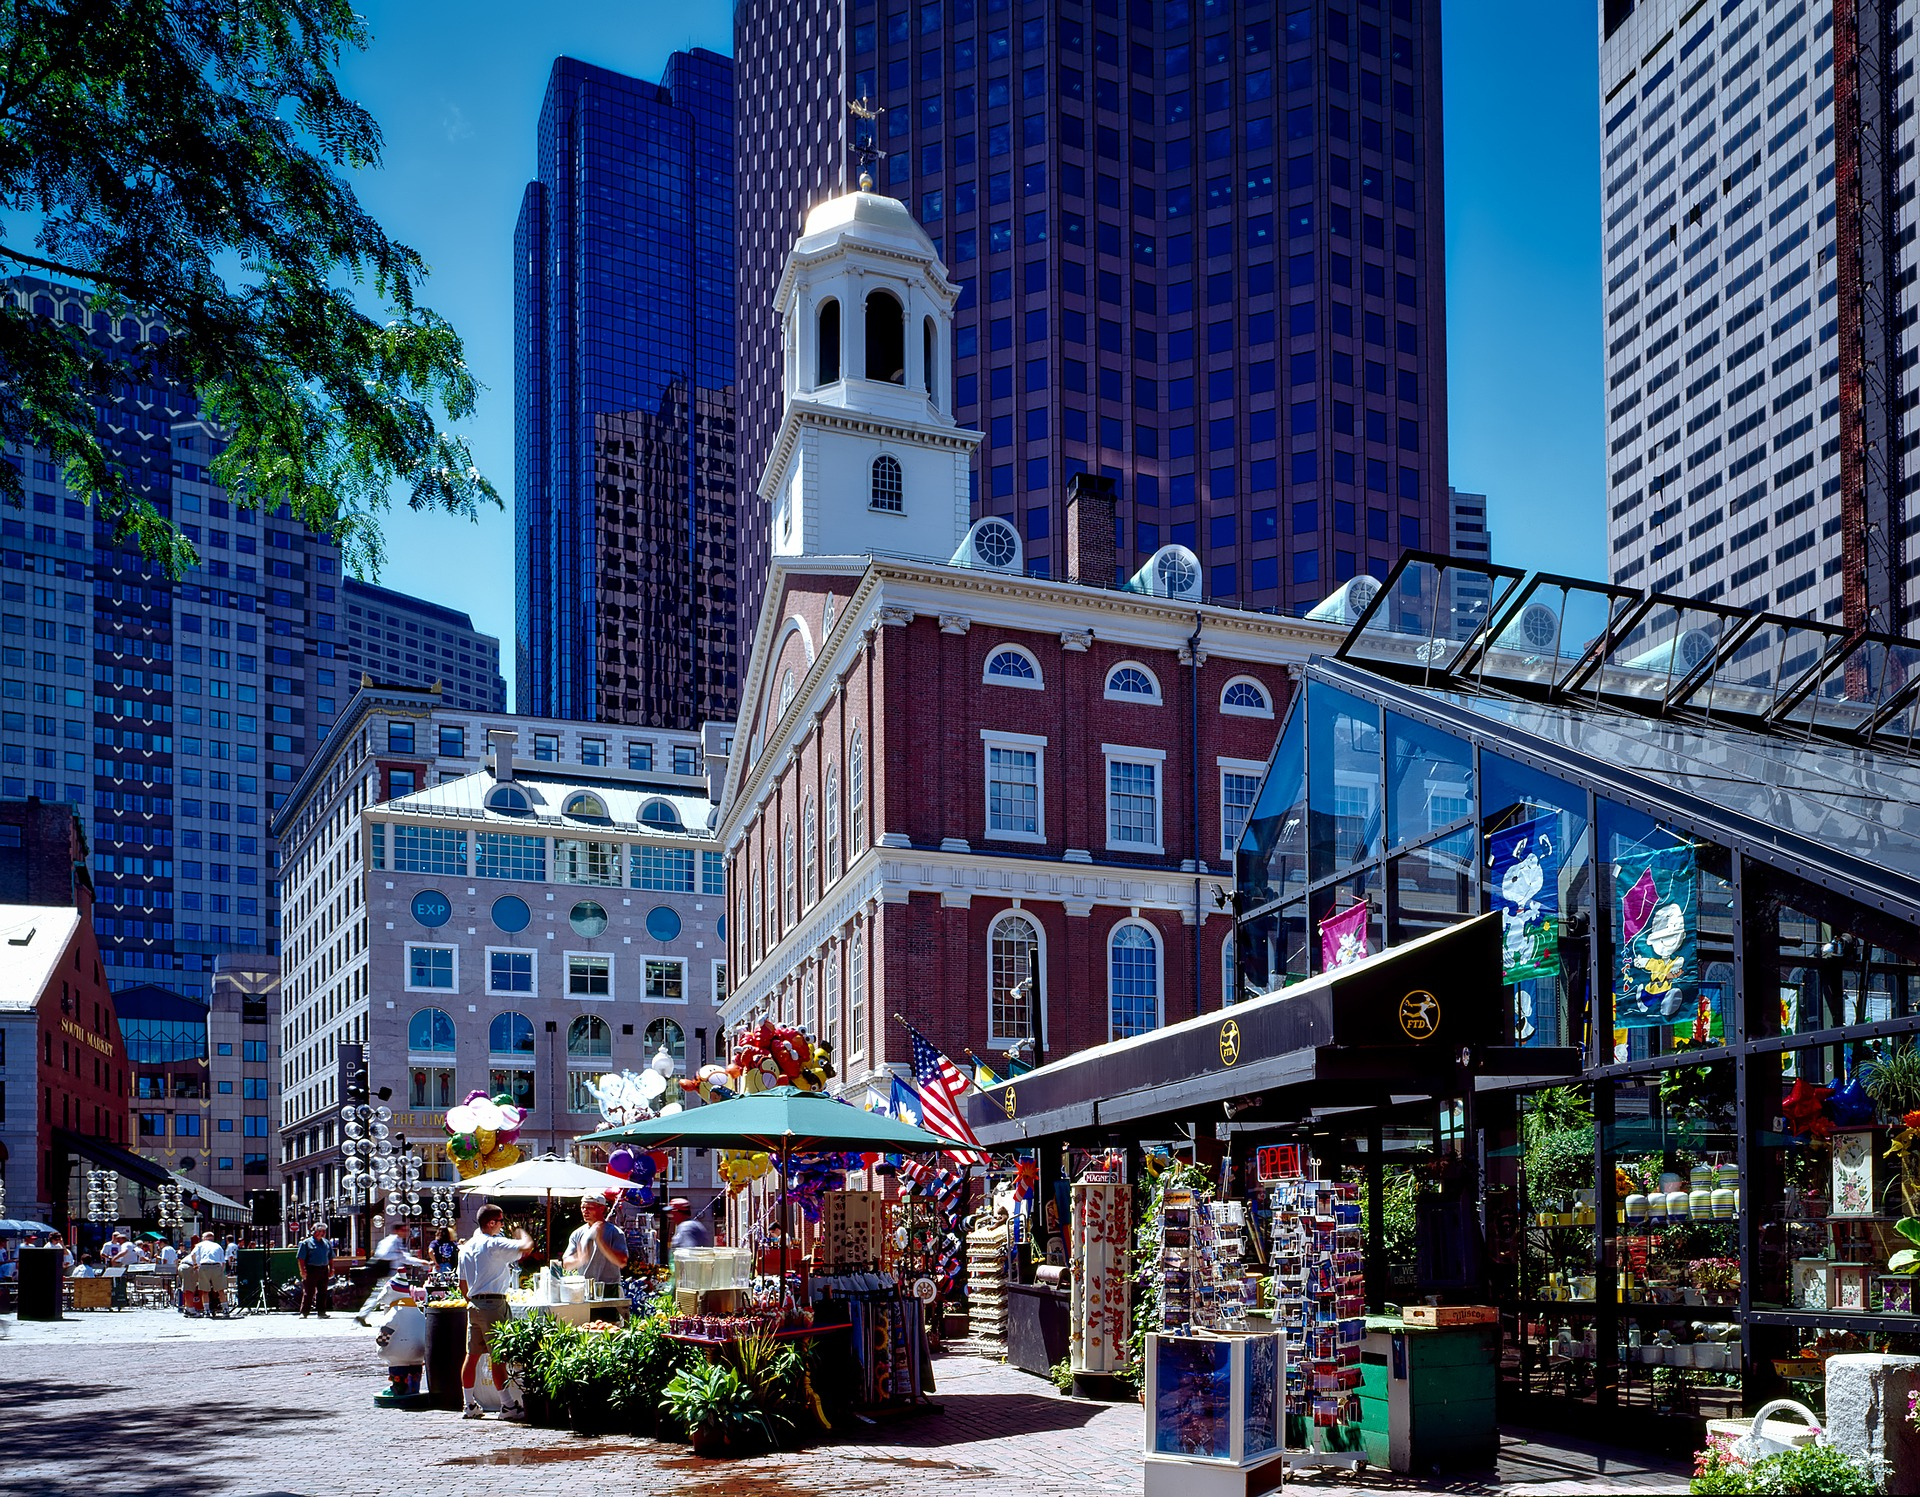 Faneuil Hall during the day.